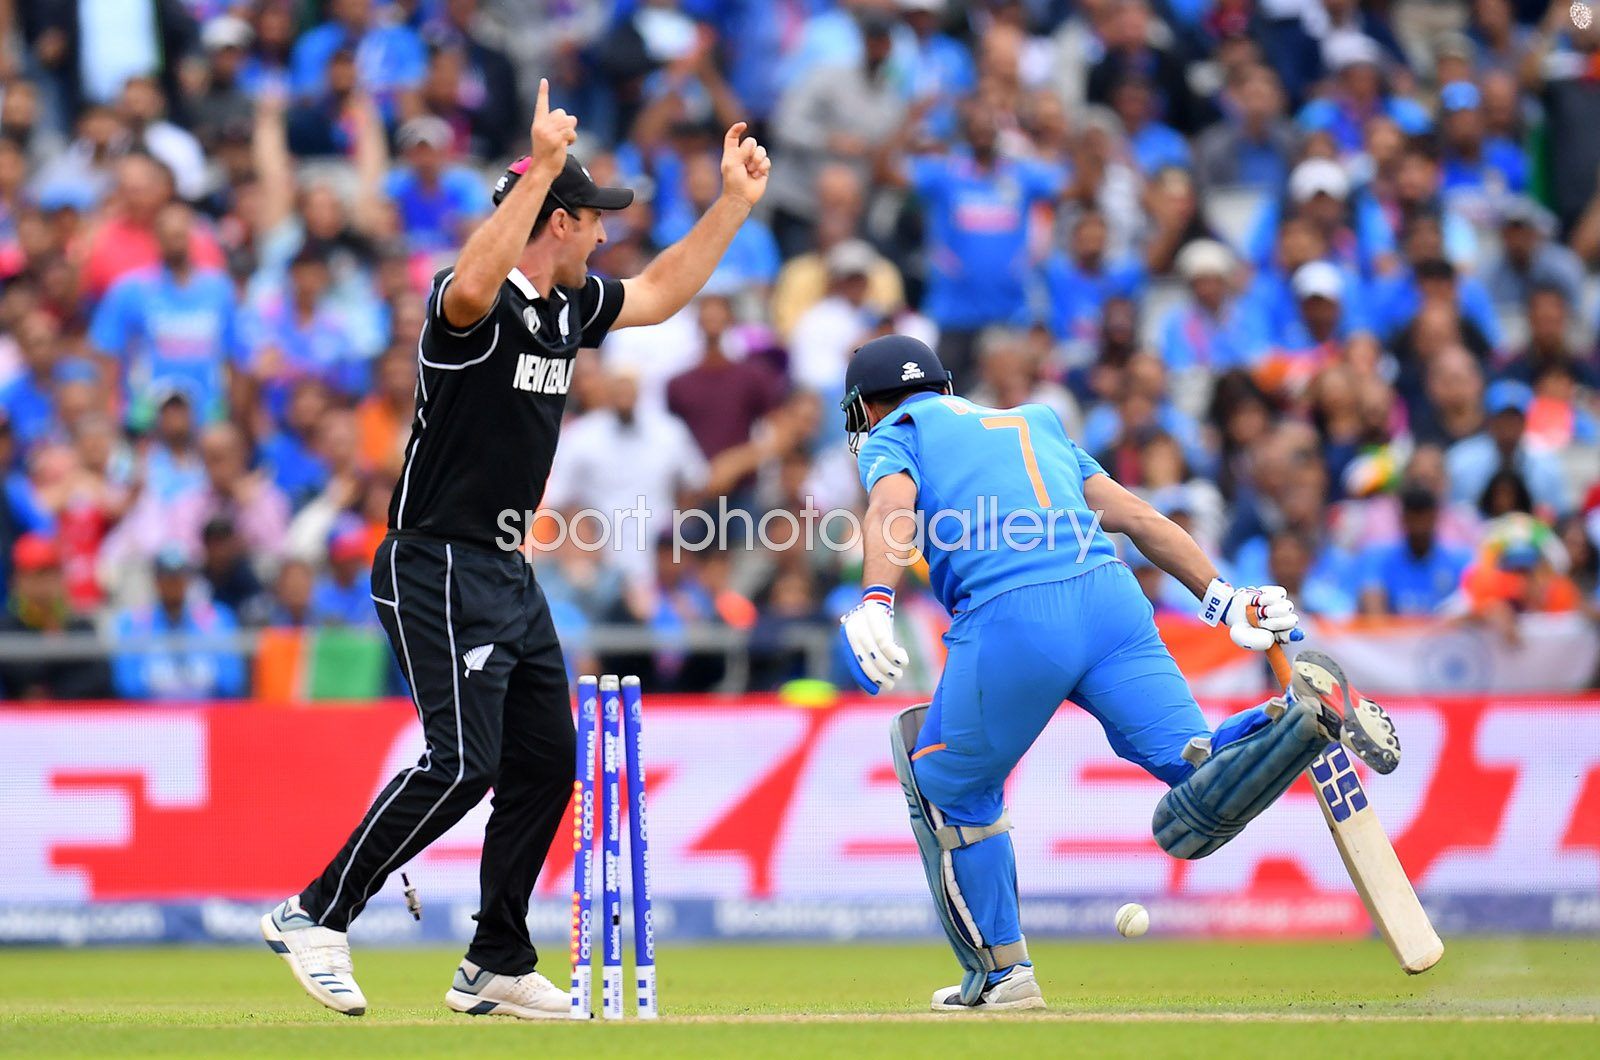 MS Dhoni India run out by Martin Guptill New Zealand World Cup 2019